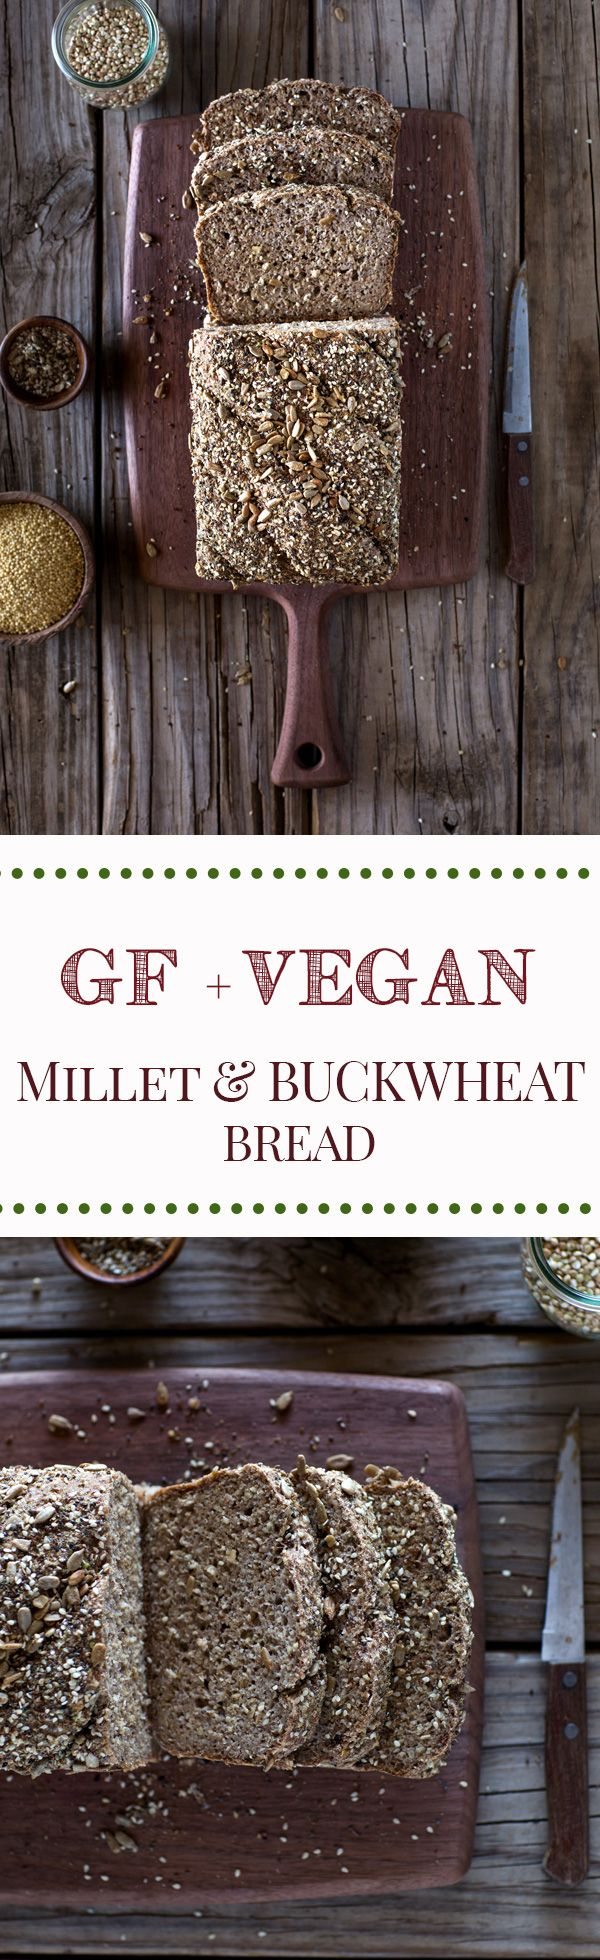 Millet and Buckwheat Bread : Recipe for a vegan and gluten free bread made with buckwheat groats, millet, psyllium whole husk, rolled oats, chia seeds, and other superfood ingredients.